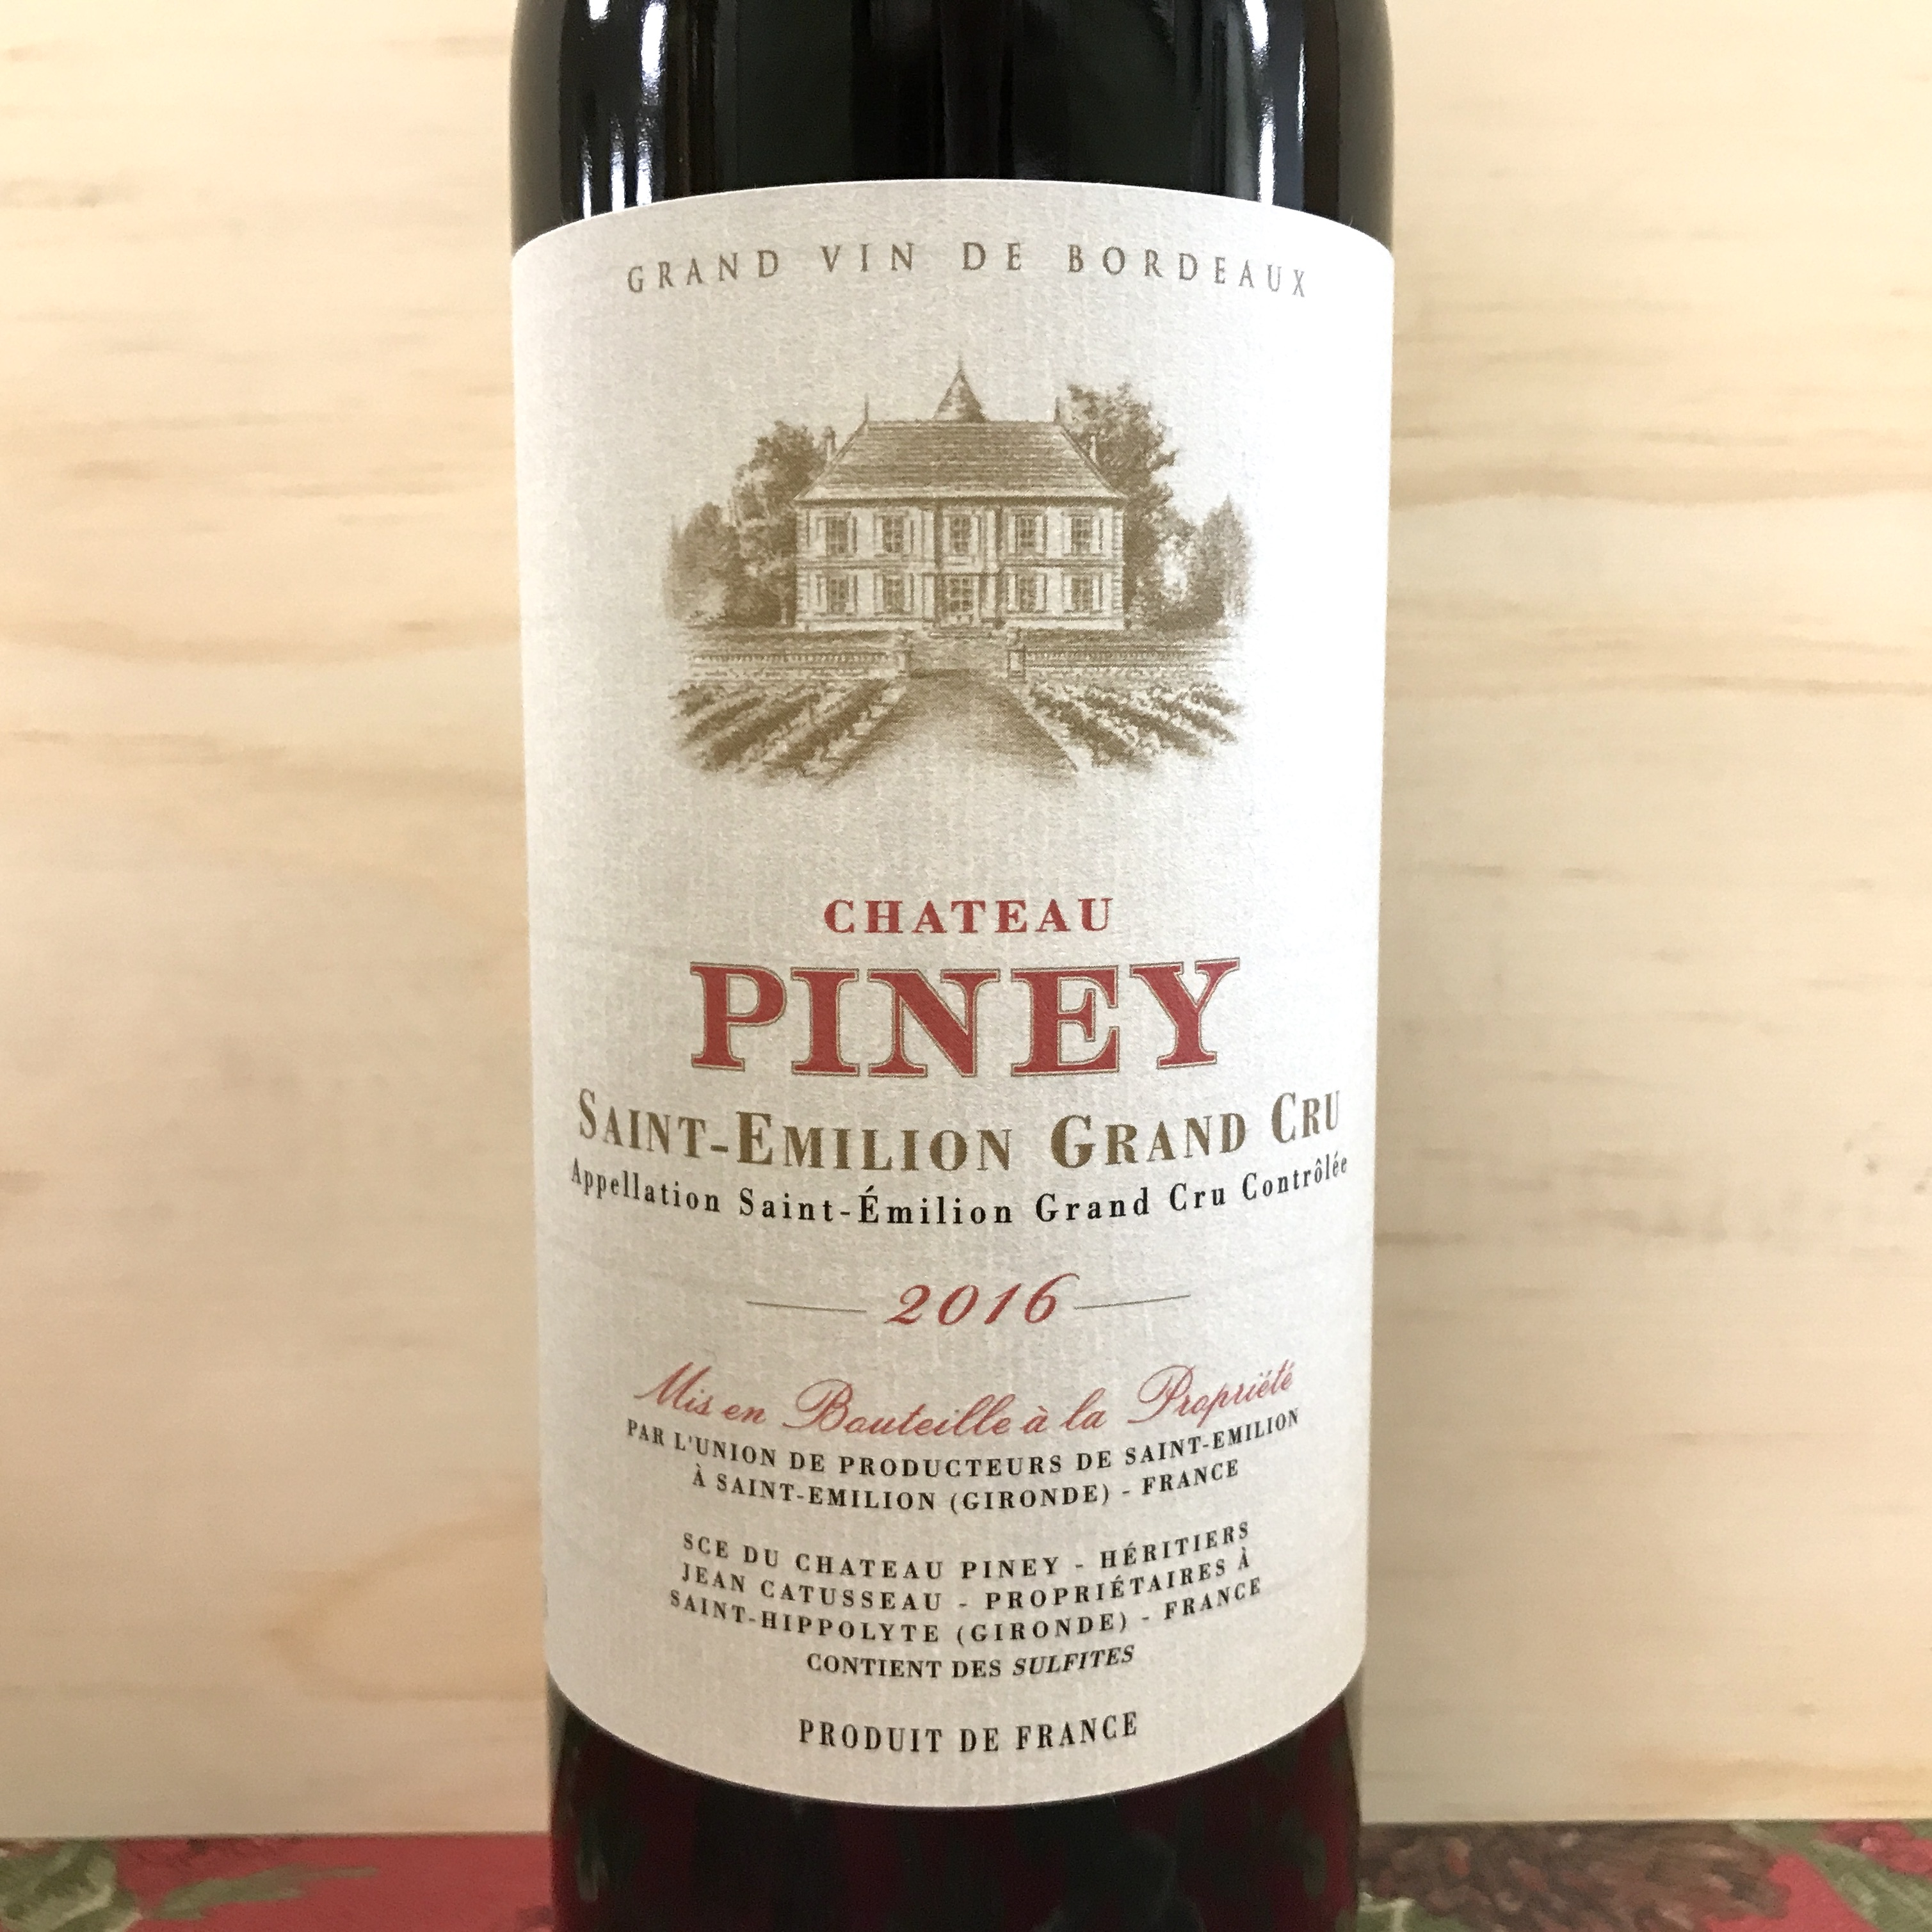 Chateau Piney Saint-Emilion Grand Cru 2016